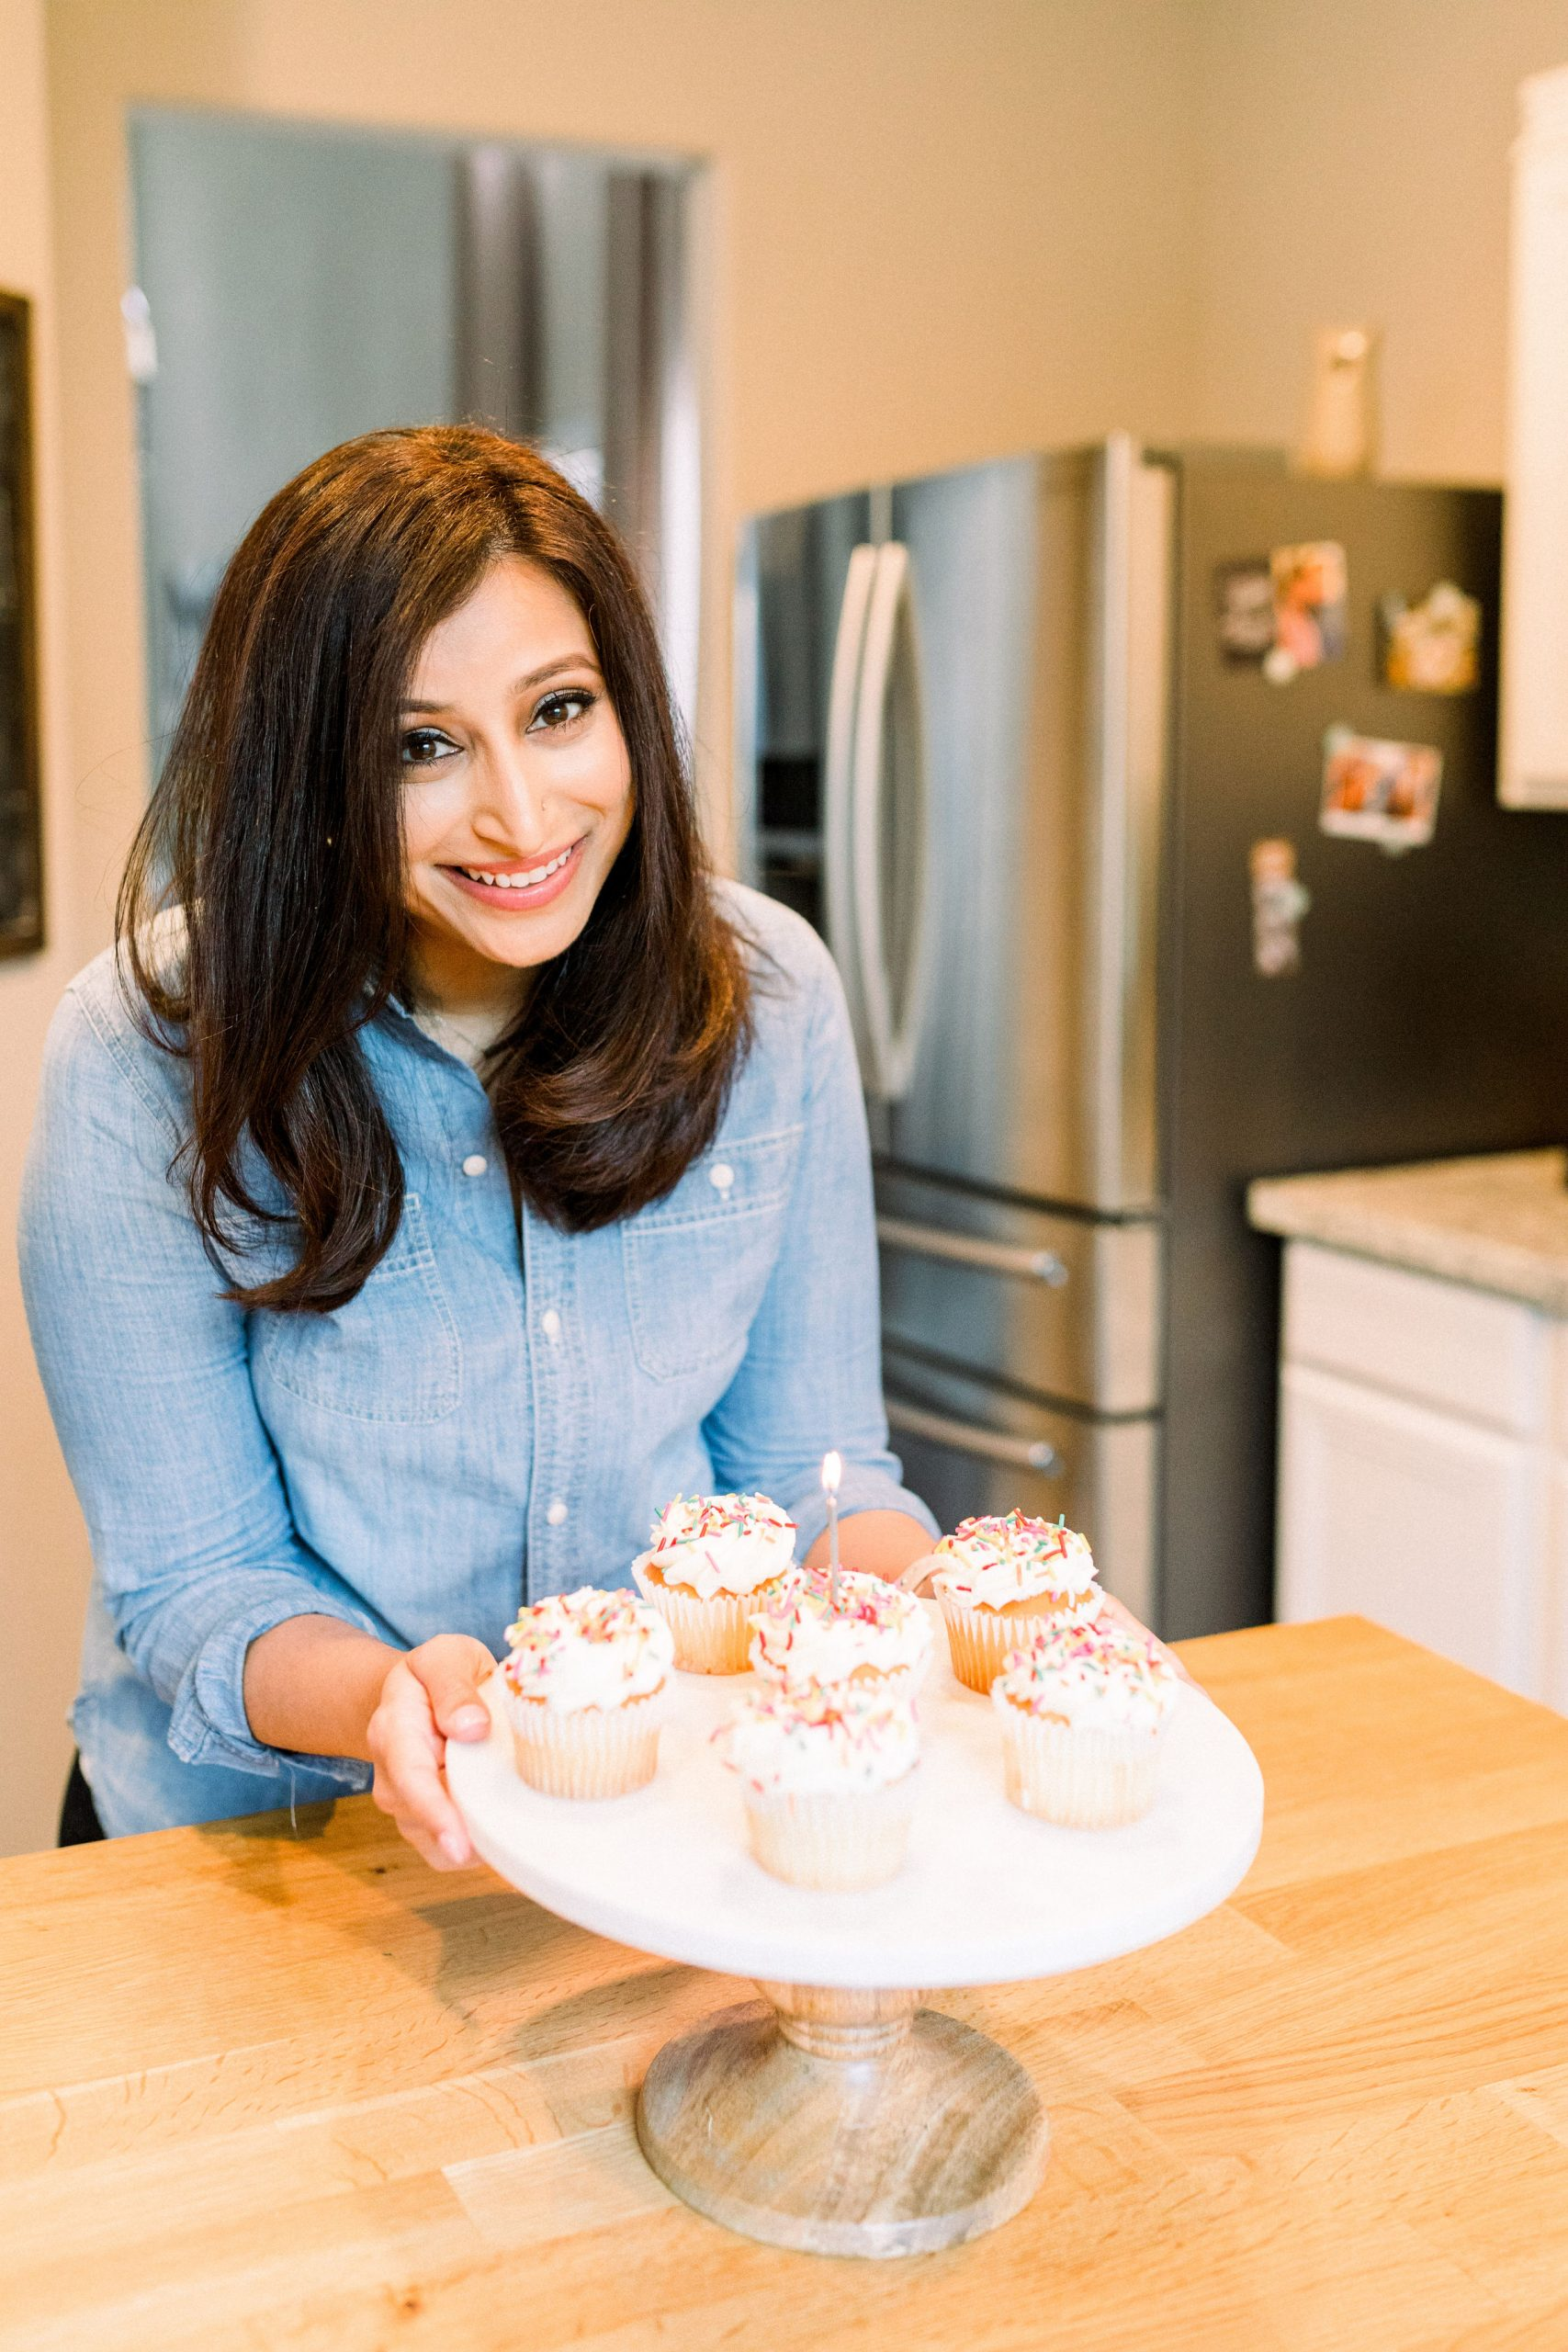 me smiling at the camera holding a cake stand with cupcakes